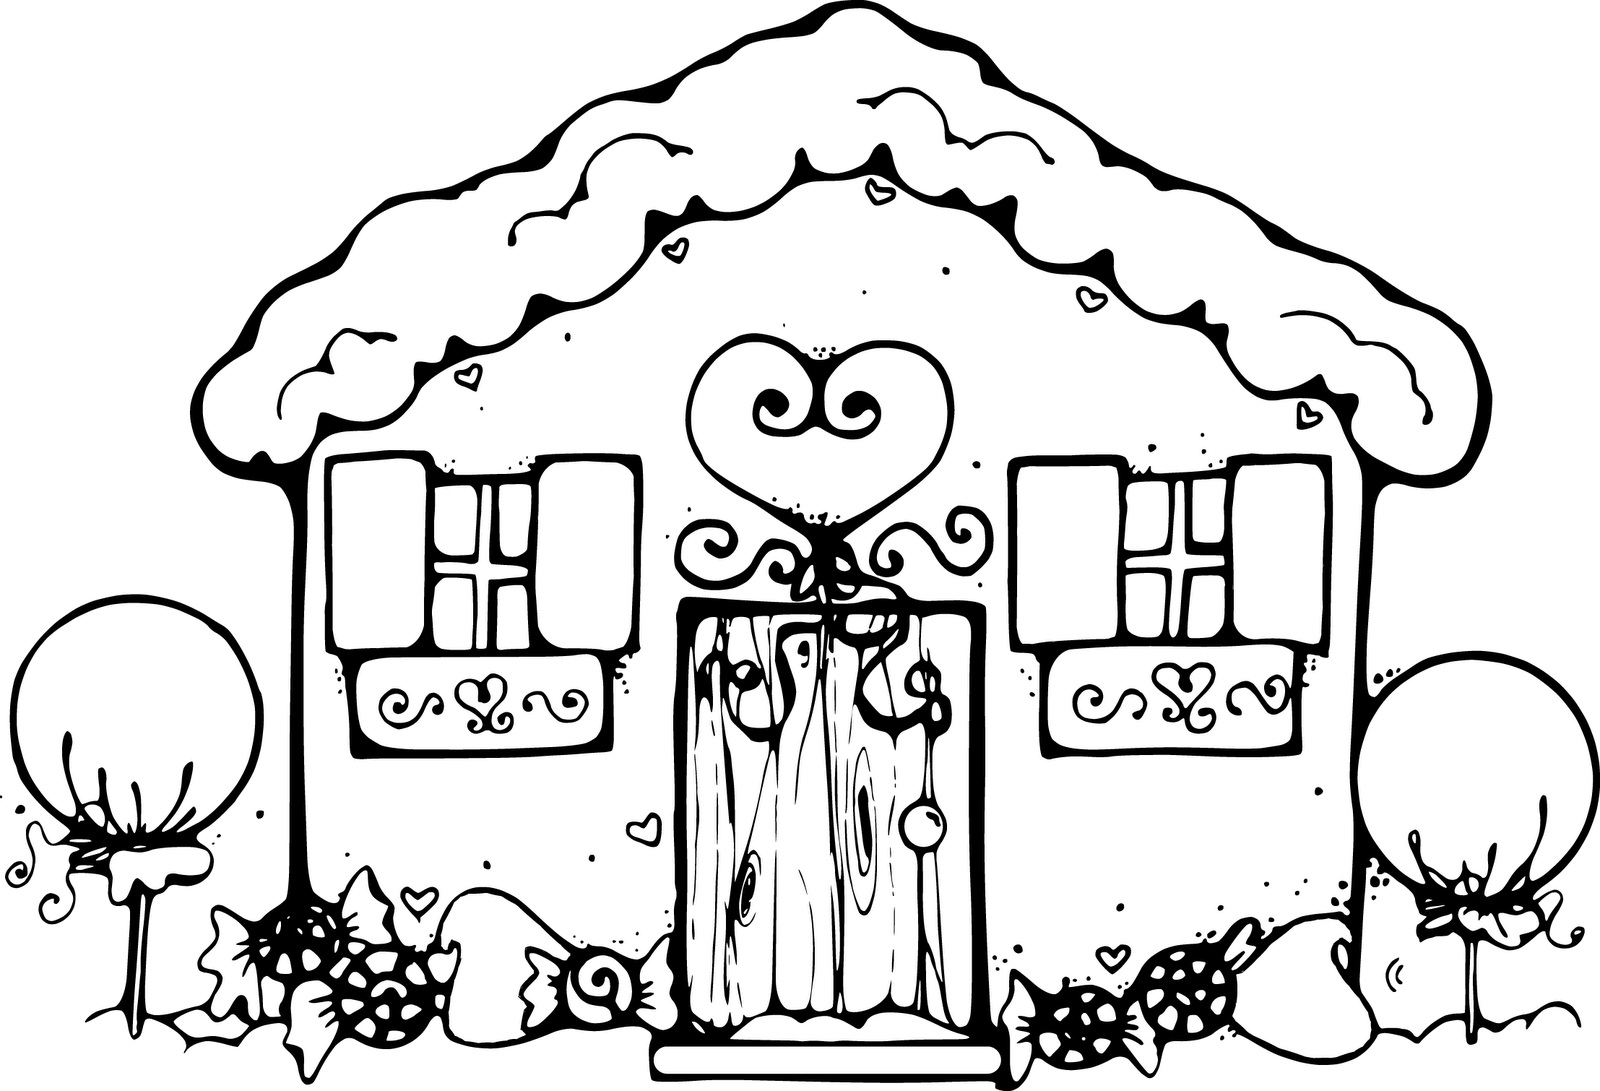 Printable coloring pages gingerbread house - Gingerbread House Coloring Pages For Kids